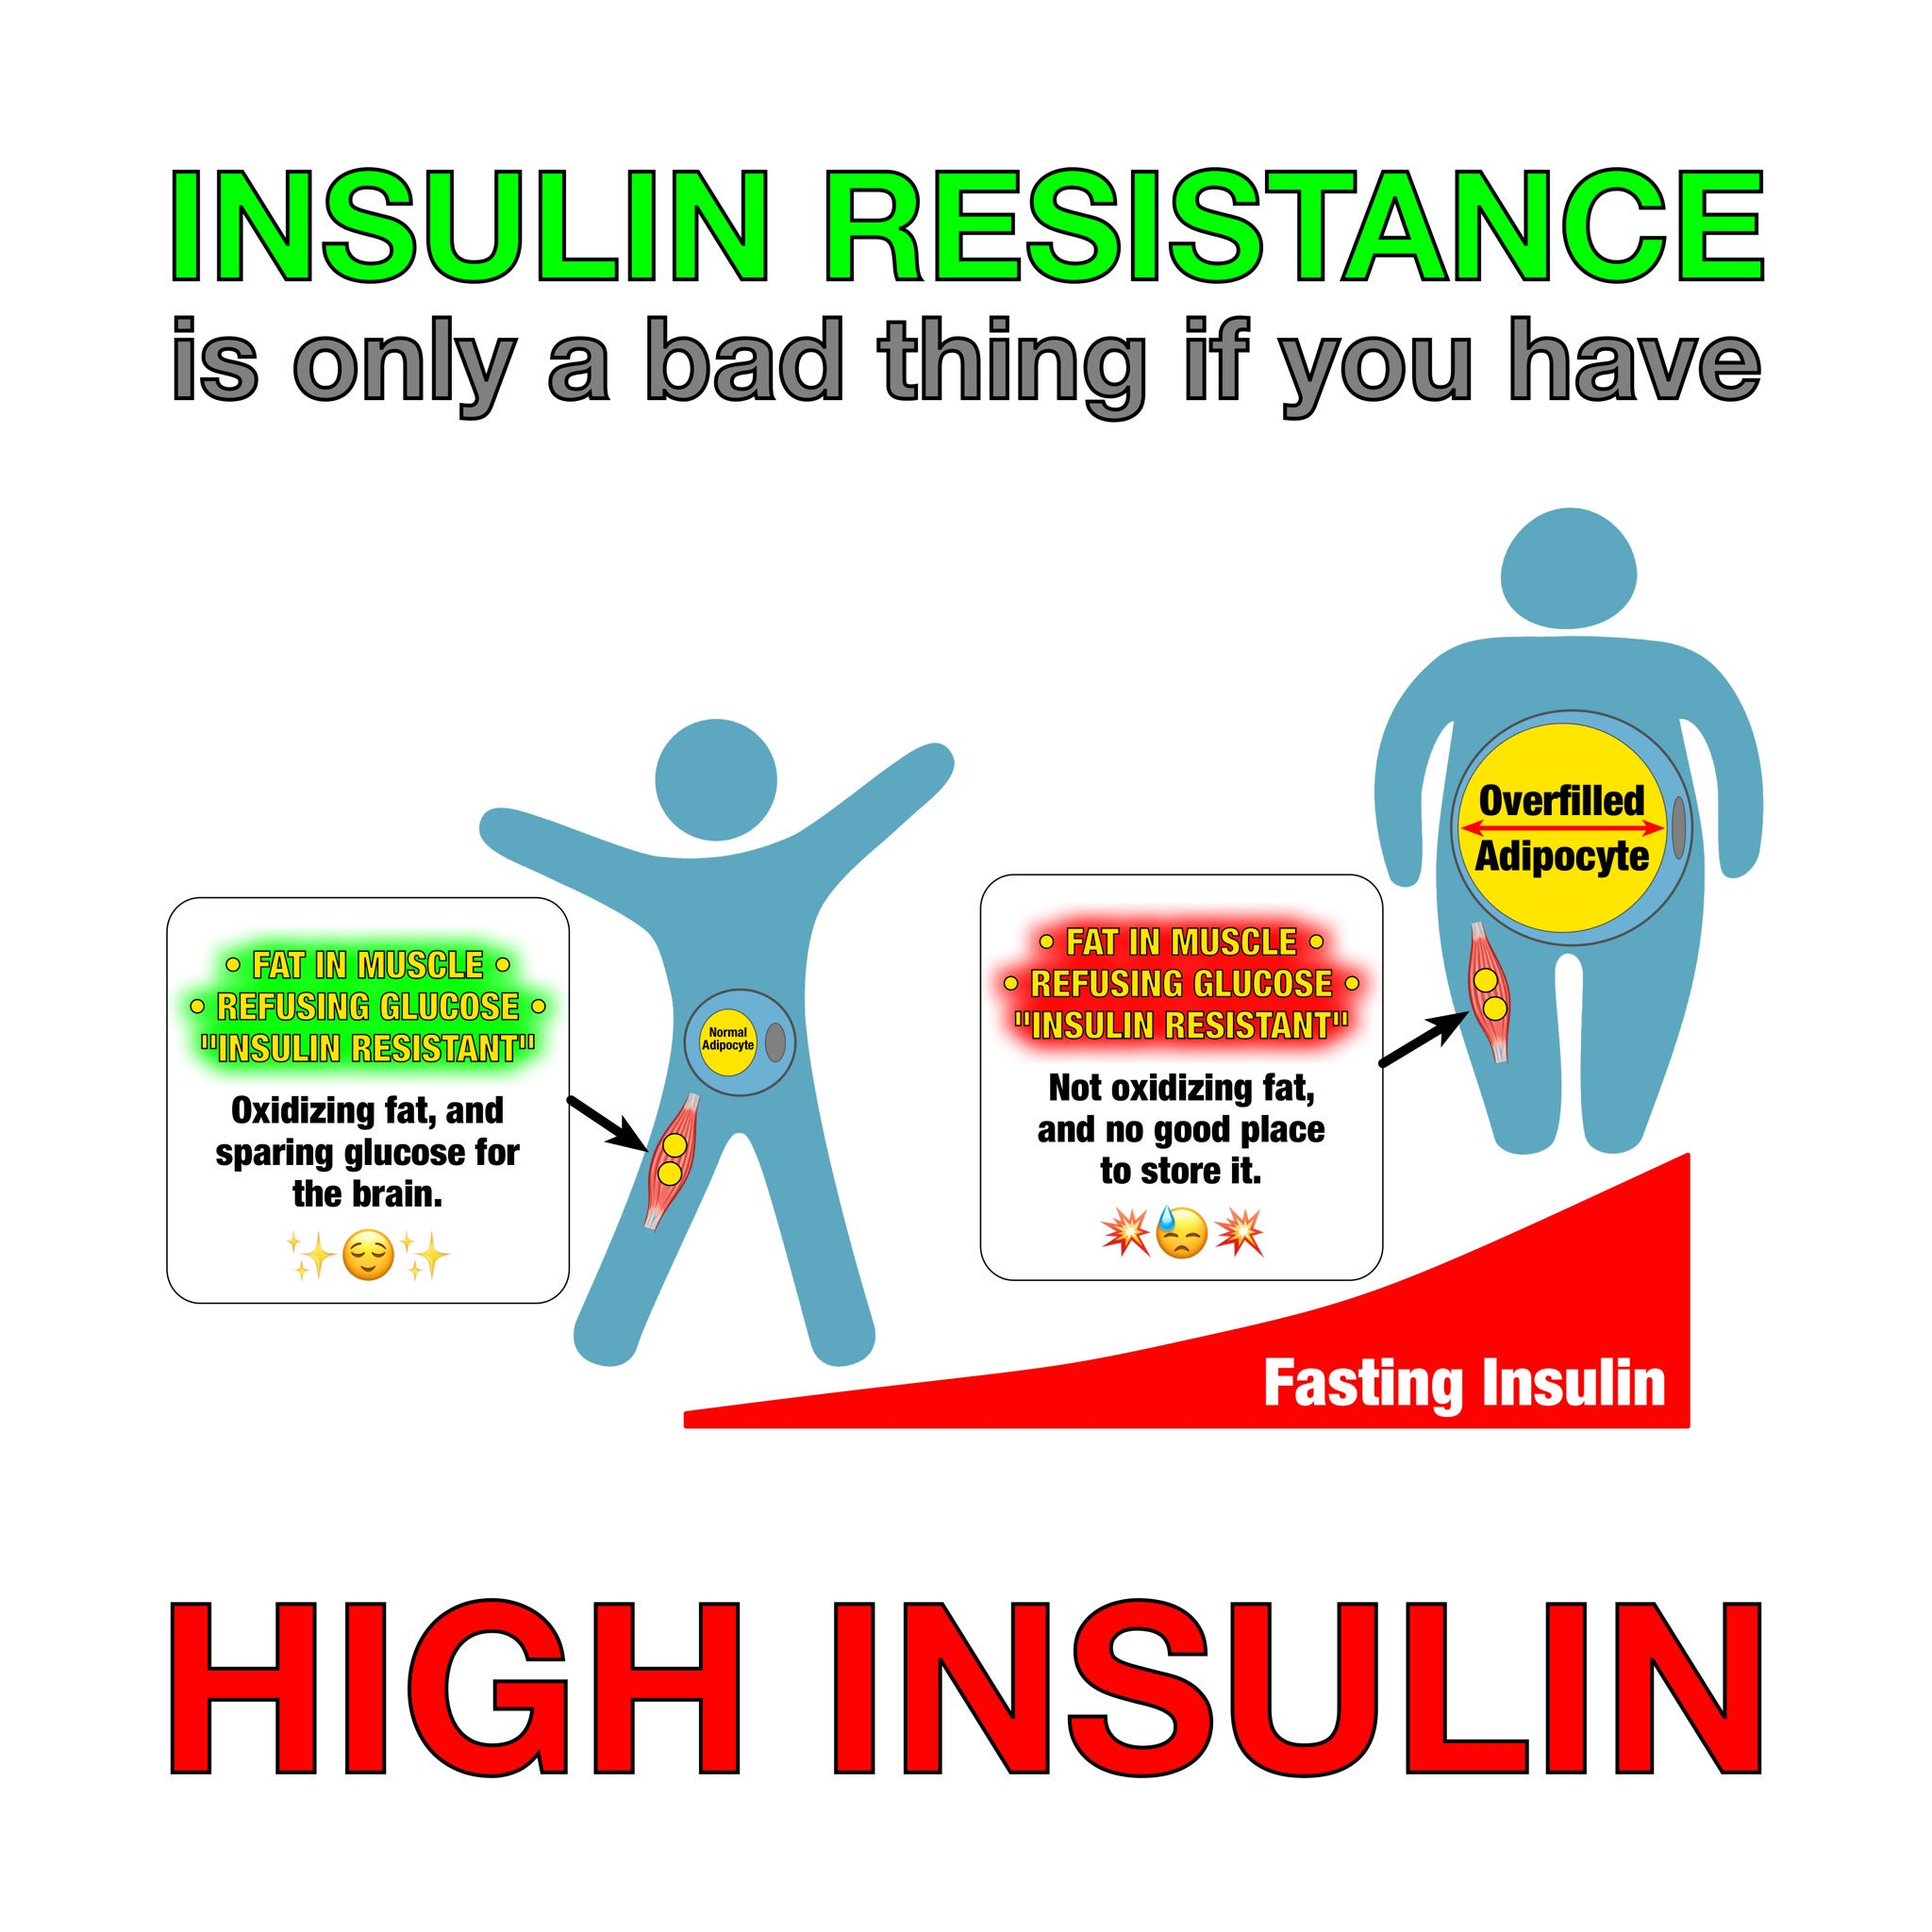 """Next time some clueless vegan says that eating saturated fat causes """"insulin resistance"""" you can just smile and share this. ☺︎  凸(¬◡¬)凸  ➘ https://t.co/7wYgmj1uPj"""